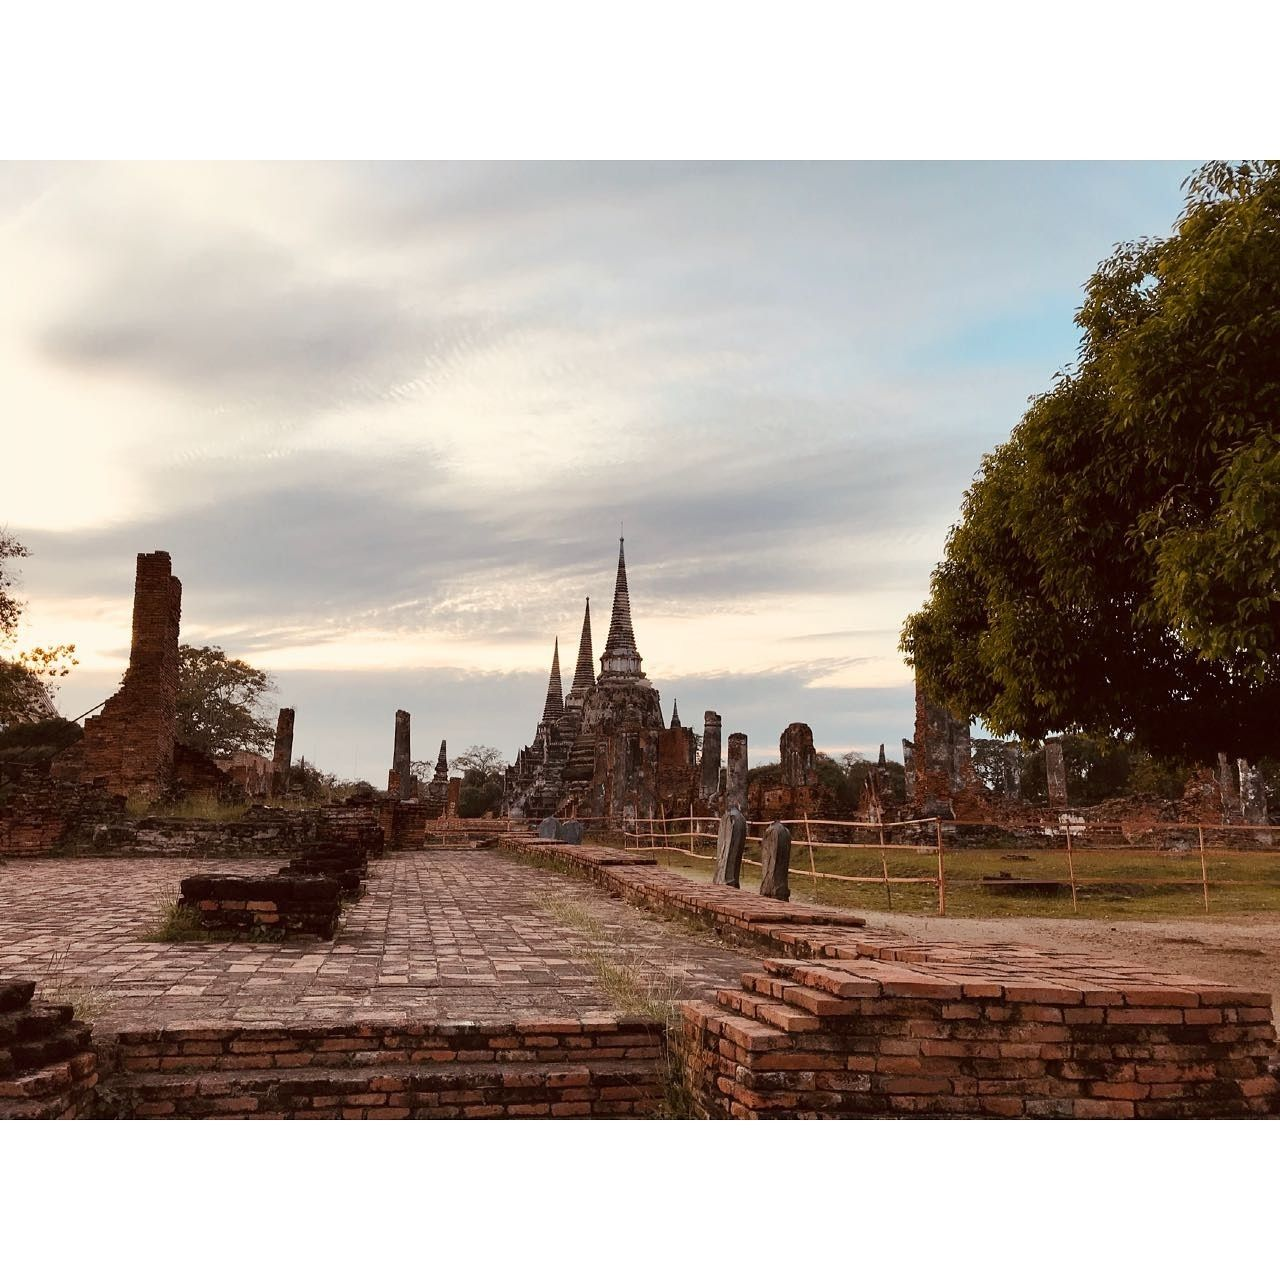 Photo of Ayutthaya By Mrityunjay Gupta